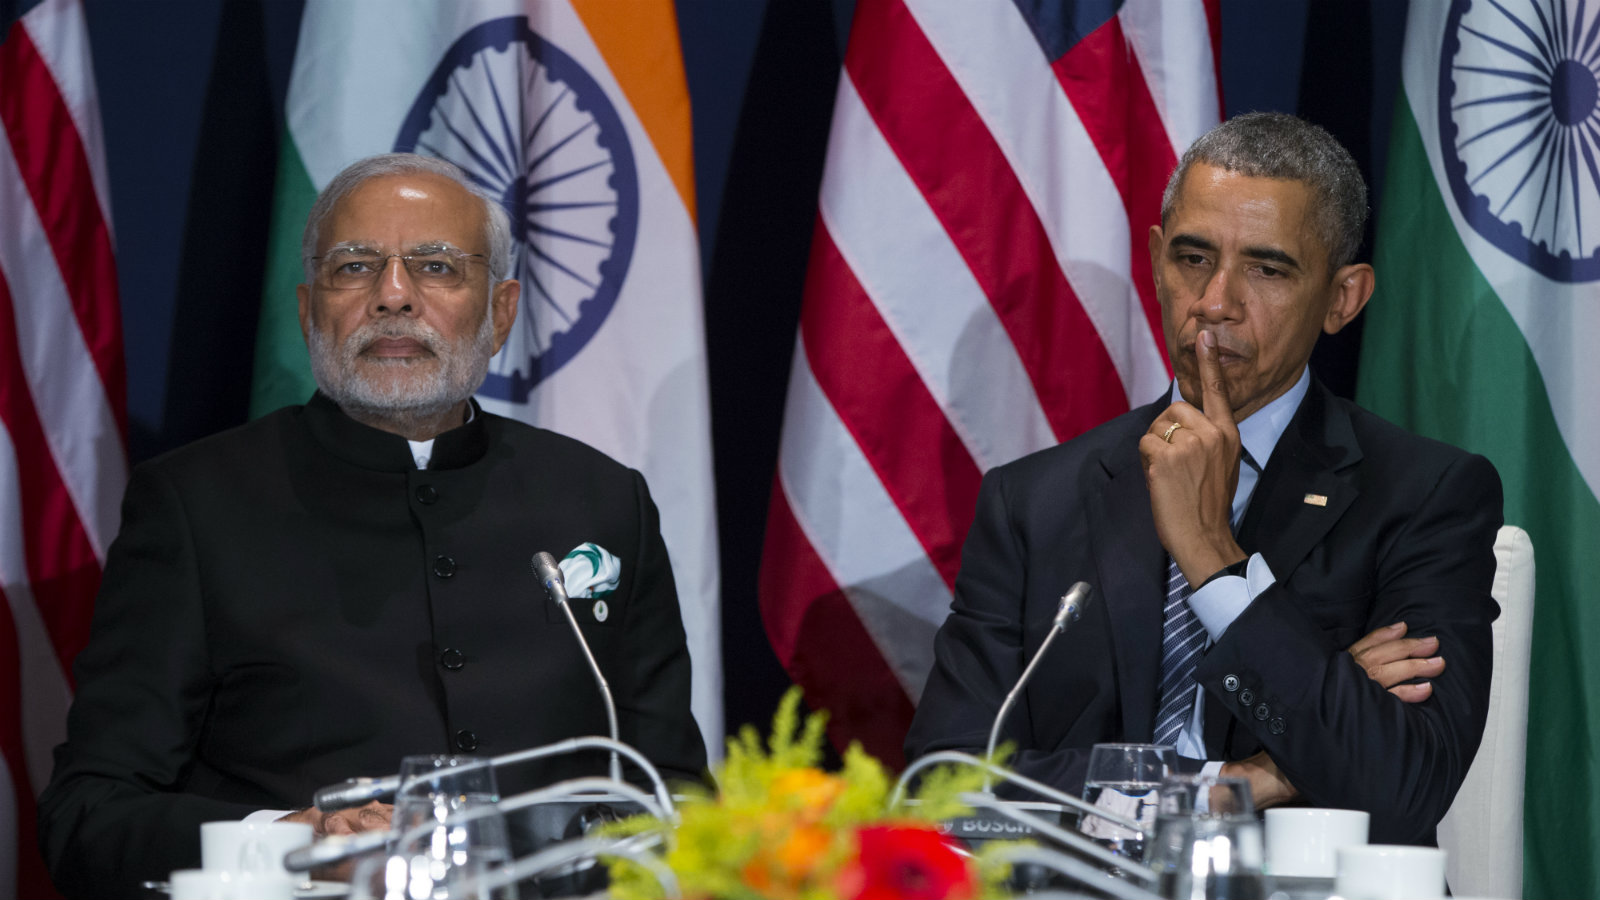 U.S. President Barack Obama, right, meets with Indian Prime Minister Narendra Modi during the COP21, United Nations Climate Change Conference, in Le Bourget, outside Paris, on Monday, Nov. 30, 2015.